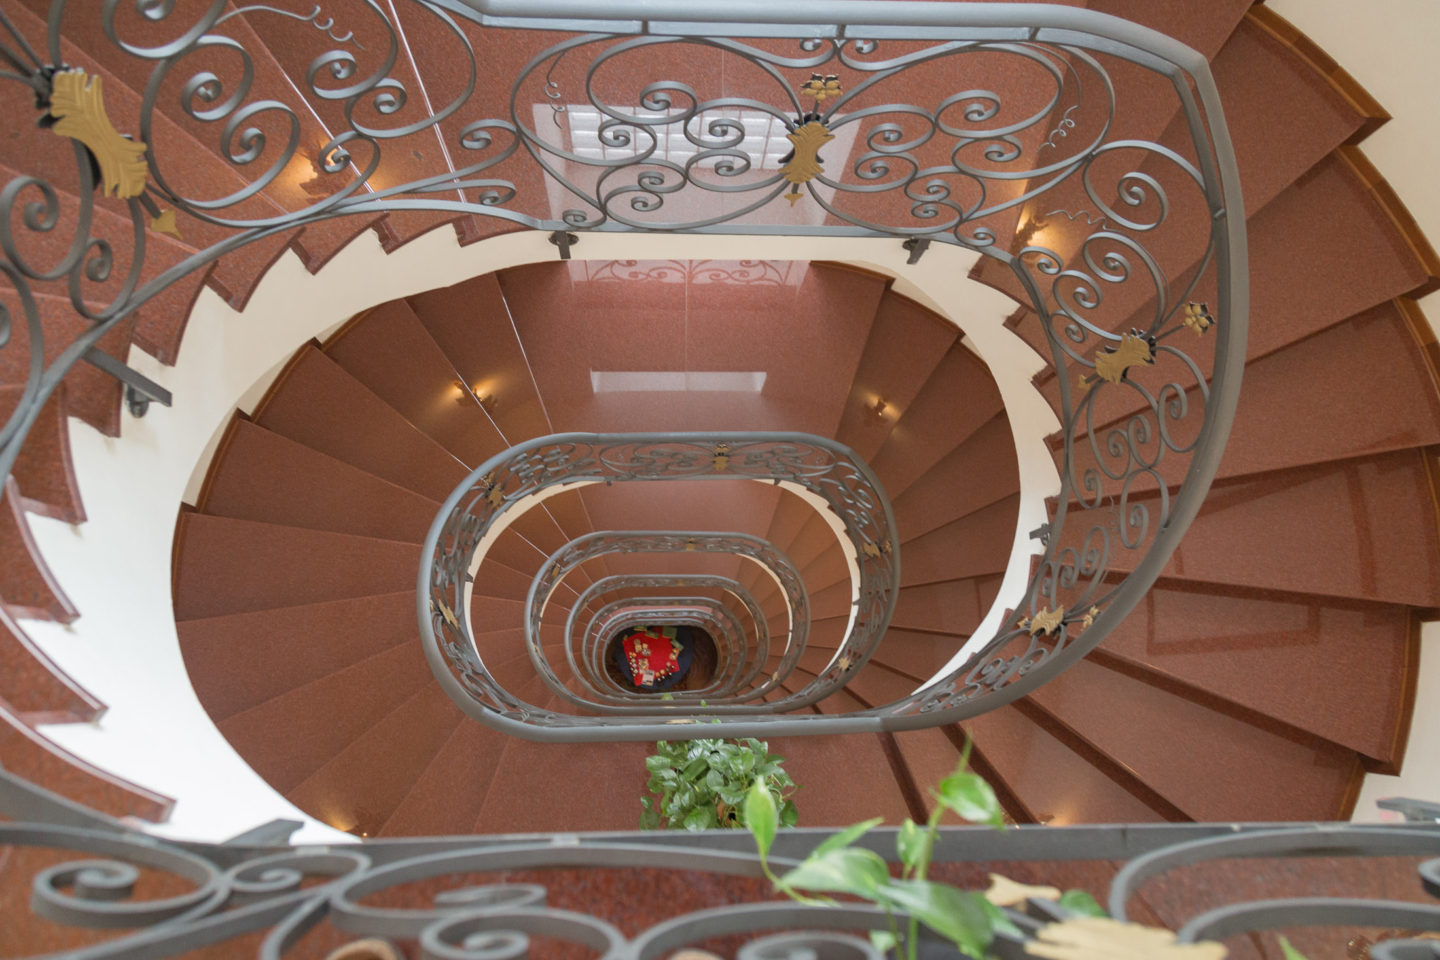 downward look at oval shaped spiral staircase with brown stairs and black delicate railings